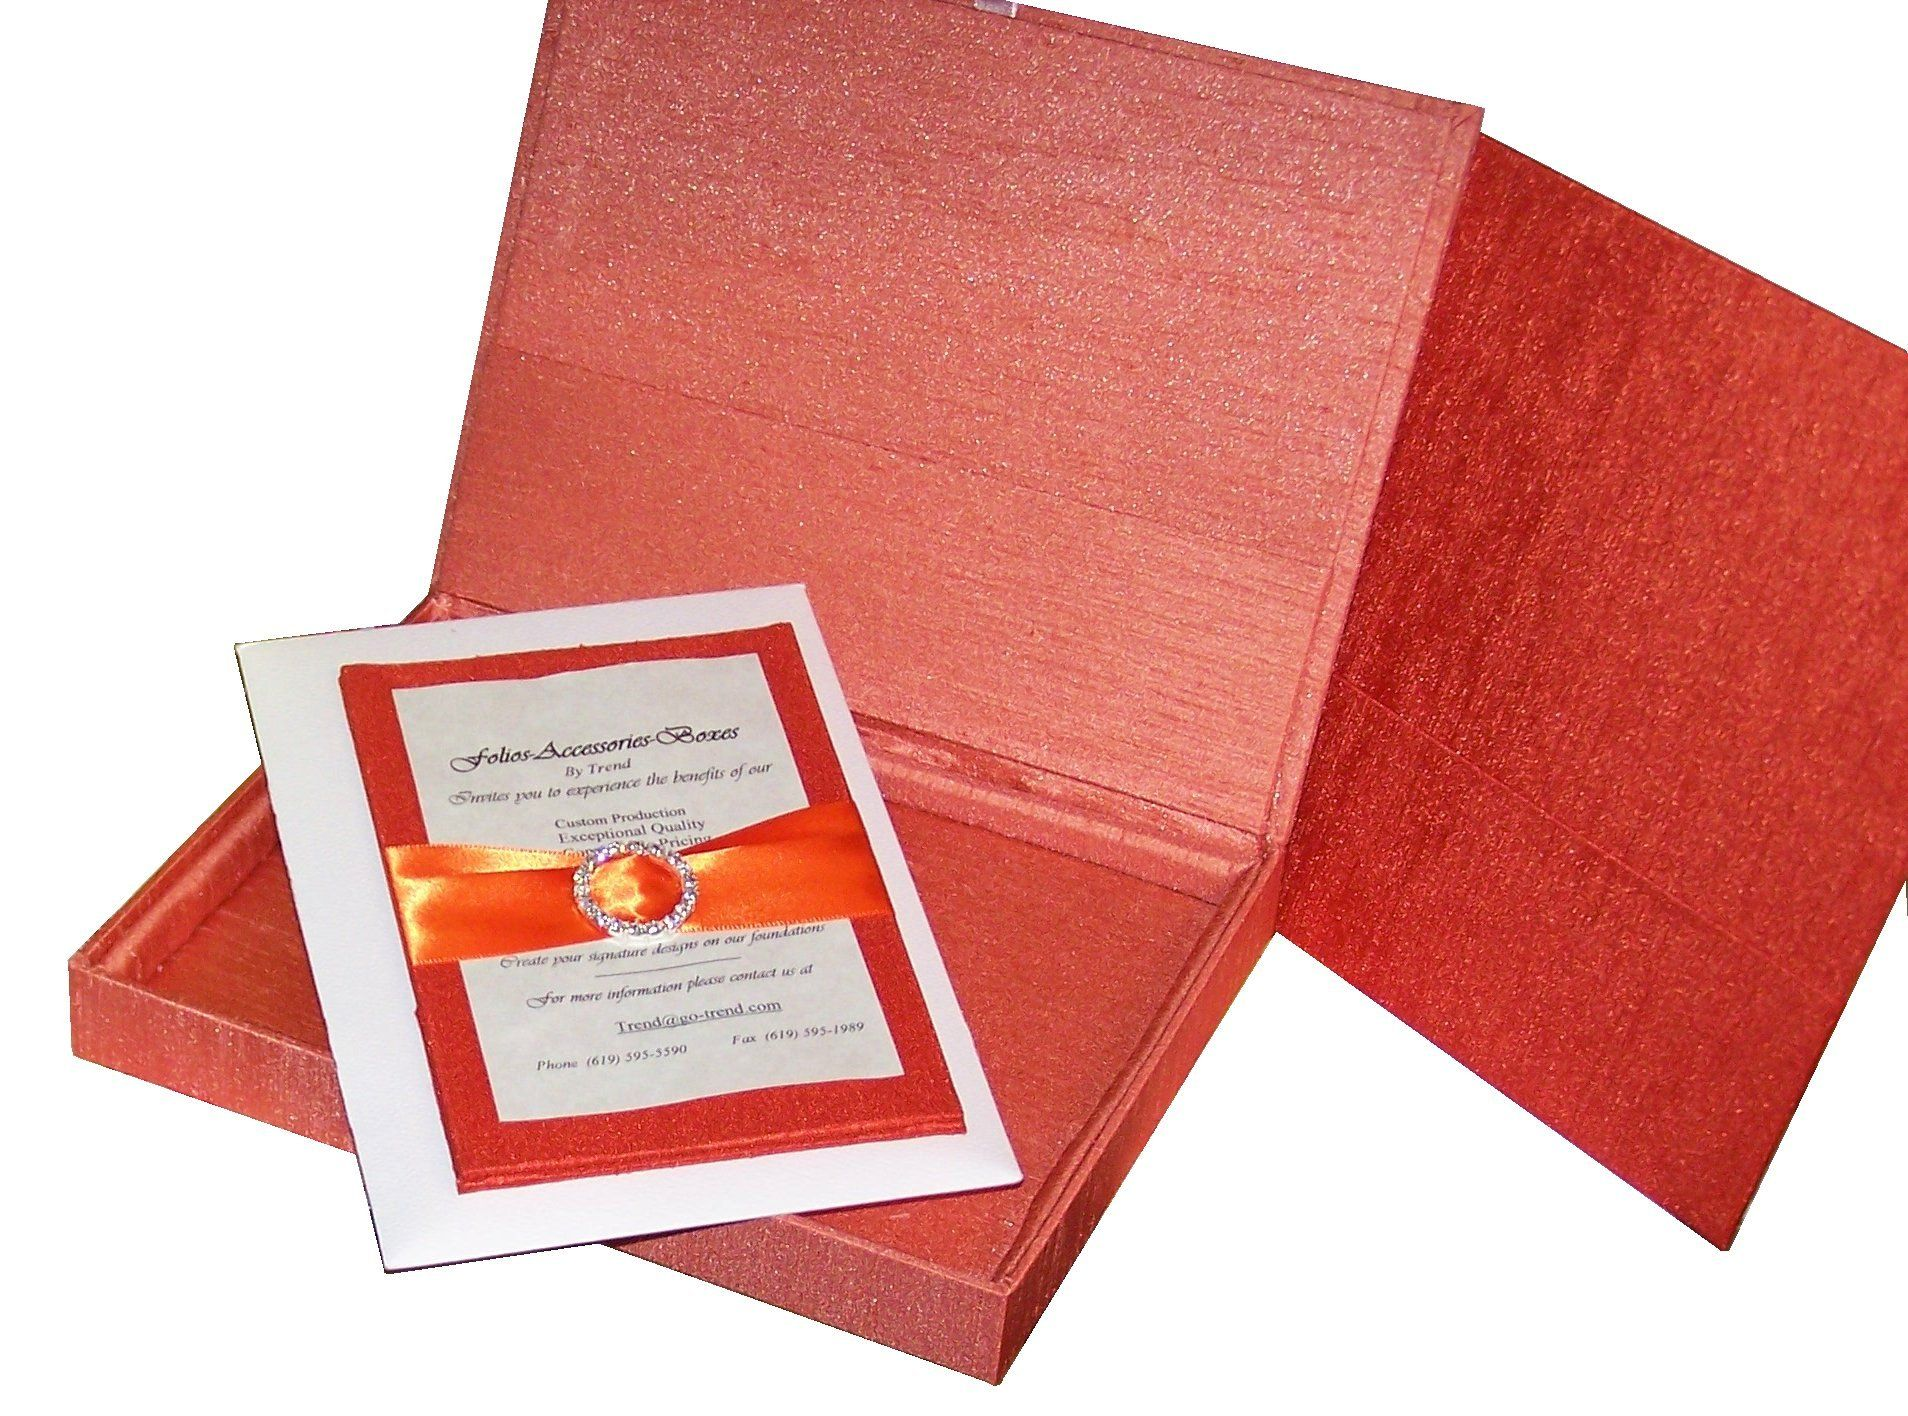 Coral Shantung invitation box by Trend Weddings & Events